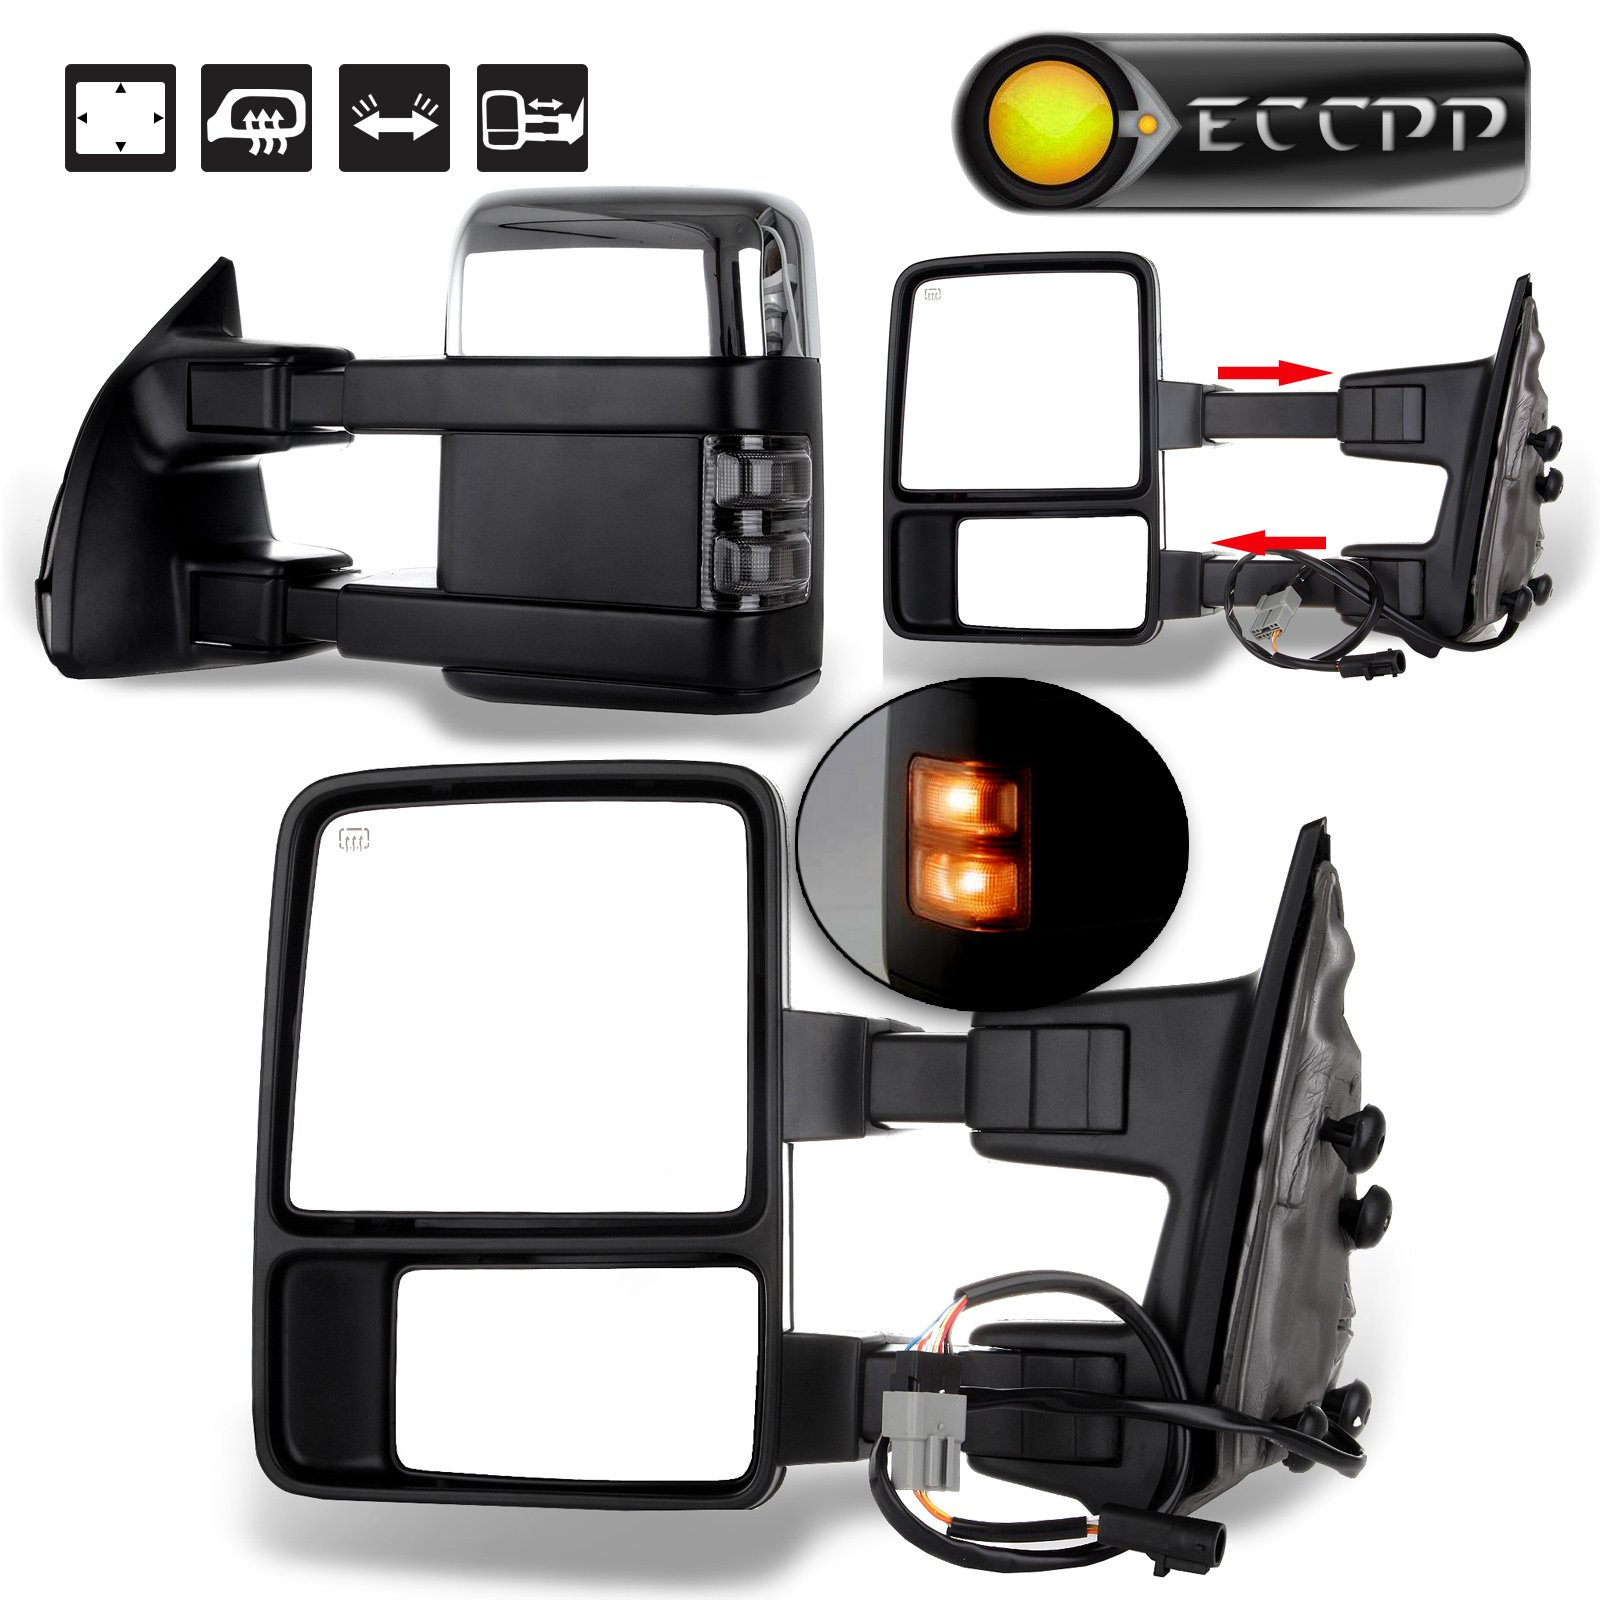 ECCPP Towing mirror For 1999-2007 Ford F250 F350 F450 F550 Super Duty Chrome Power Heated Smoke Signal Pair Set Mirrors